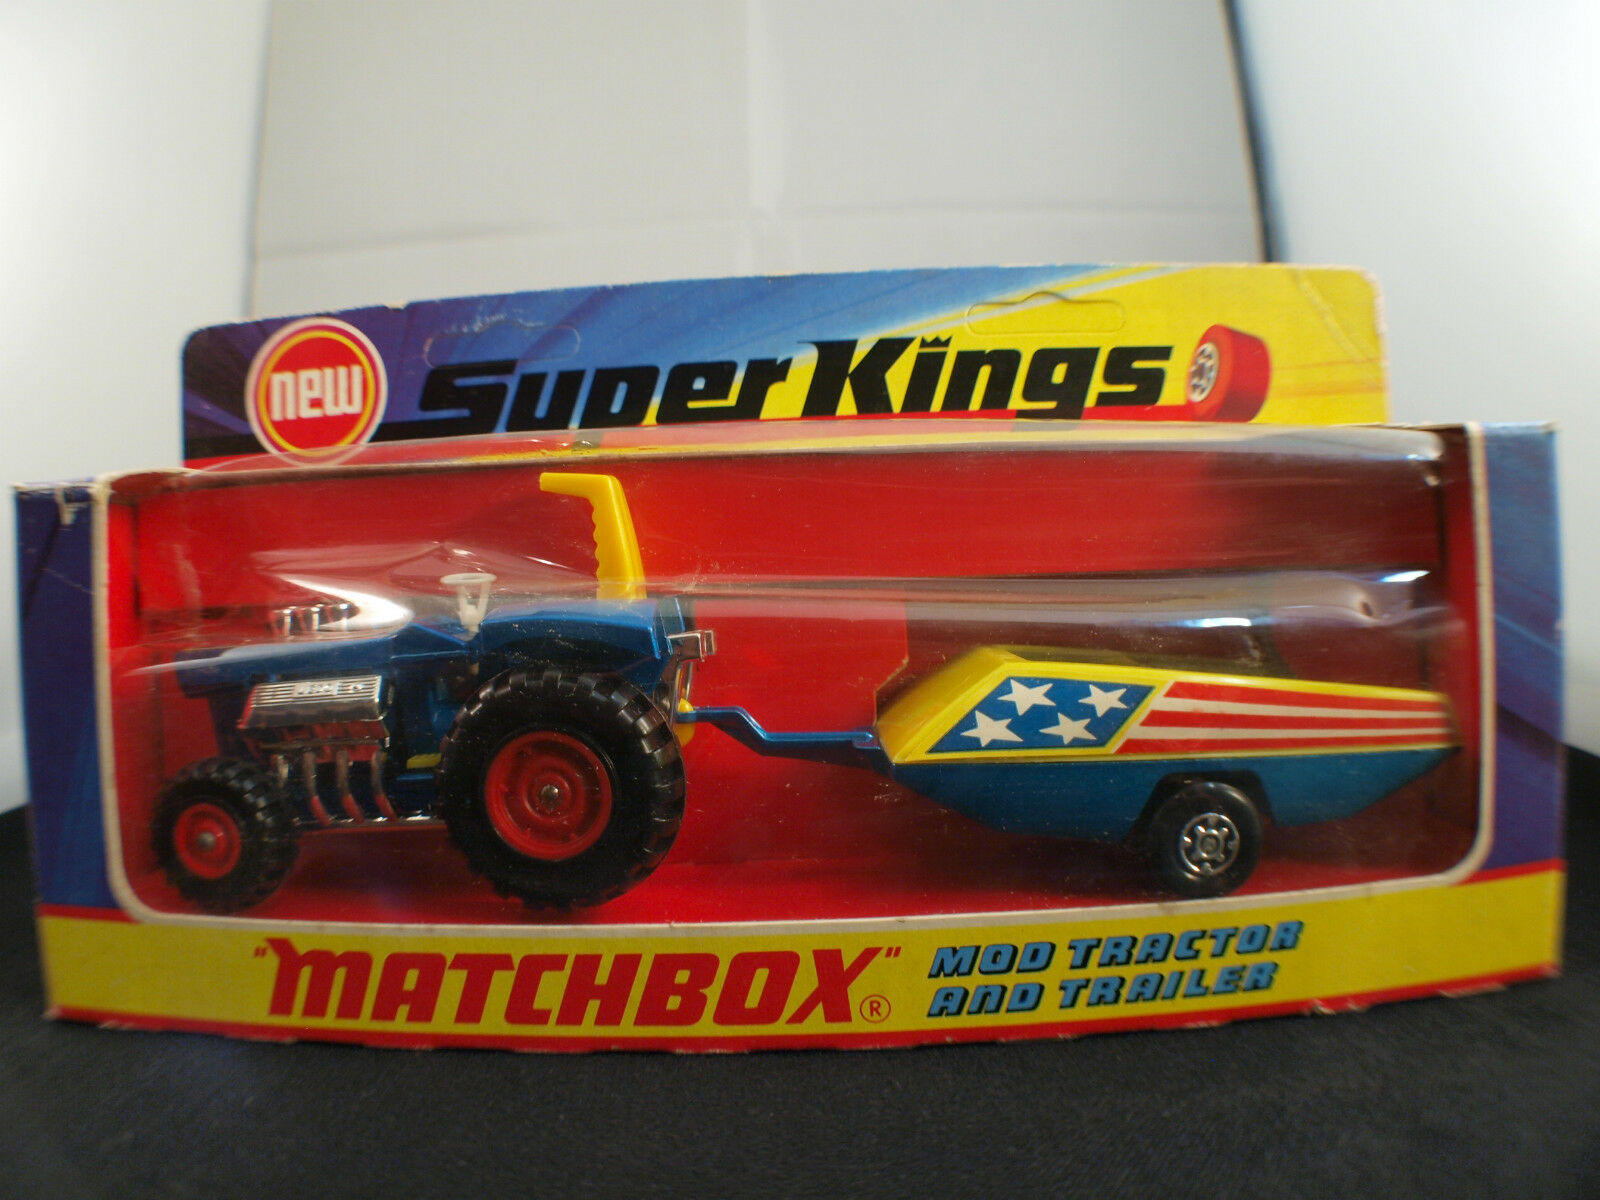 Matchbox Matchbox Matchbox Super Kings K-3 Mod Tractor and Trailer New in Box   Boxed MIB 617